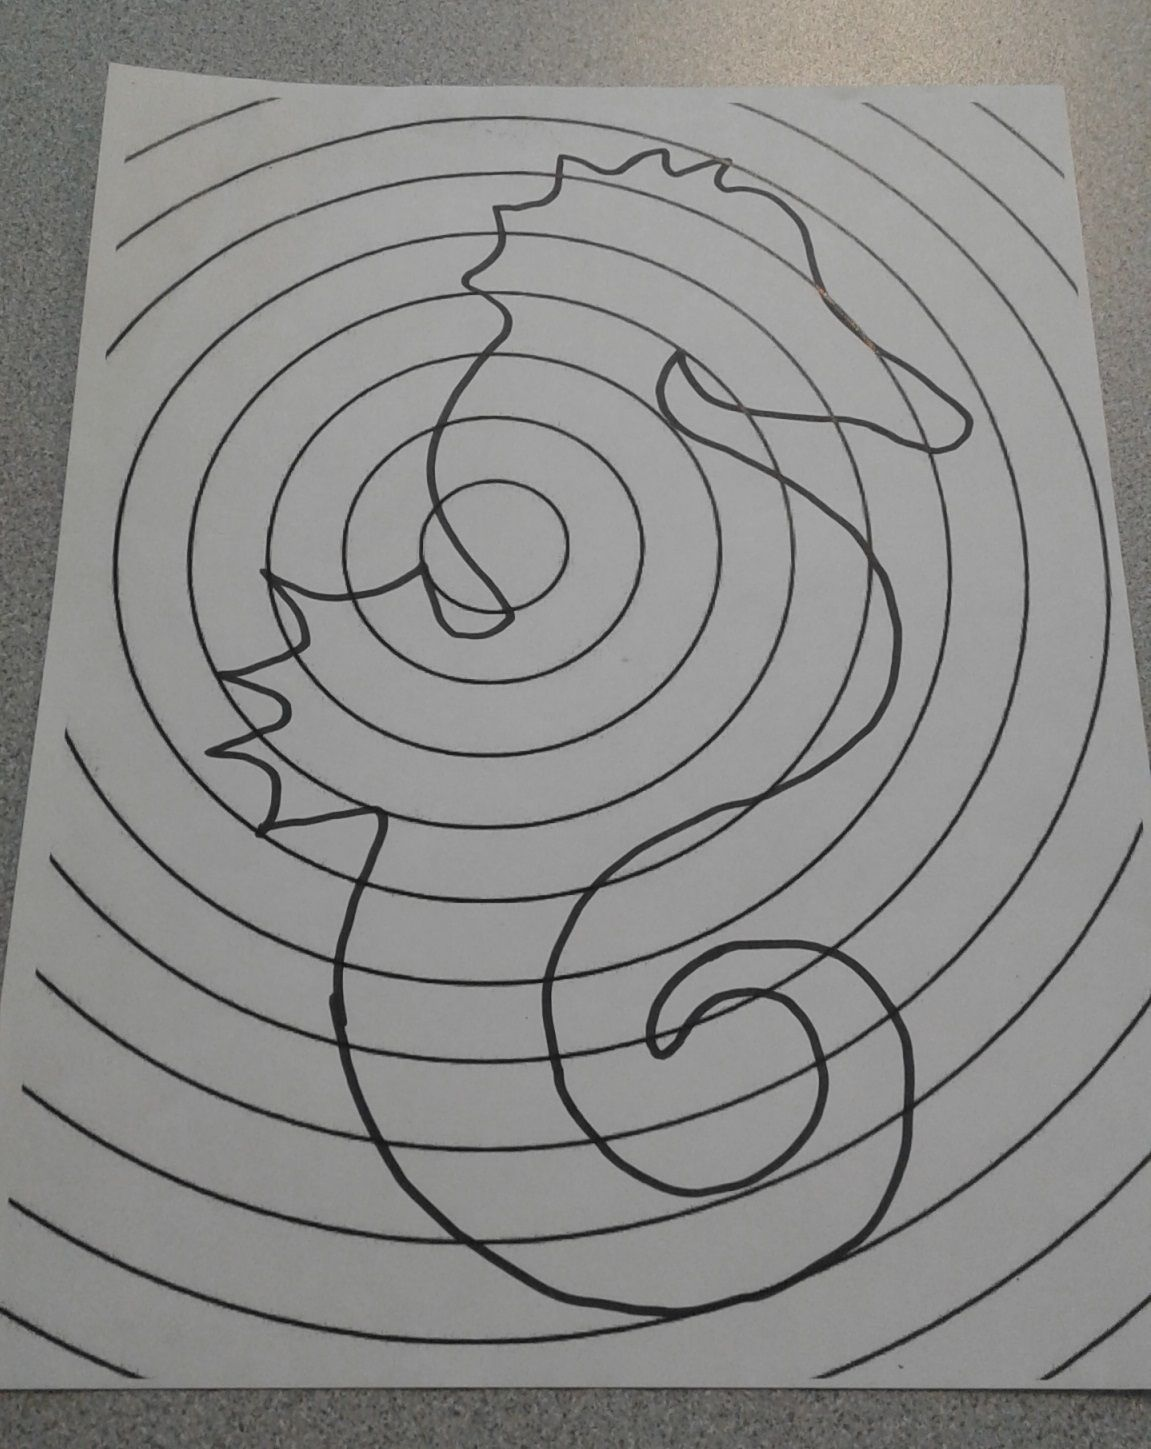 Concentric Circles Marker Design In